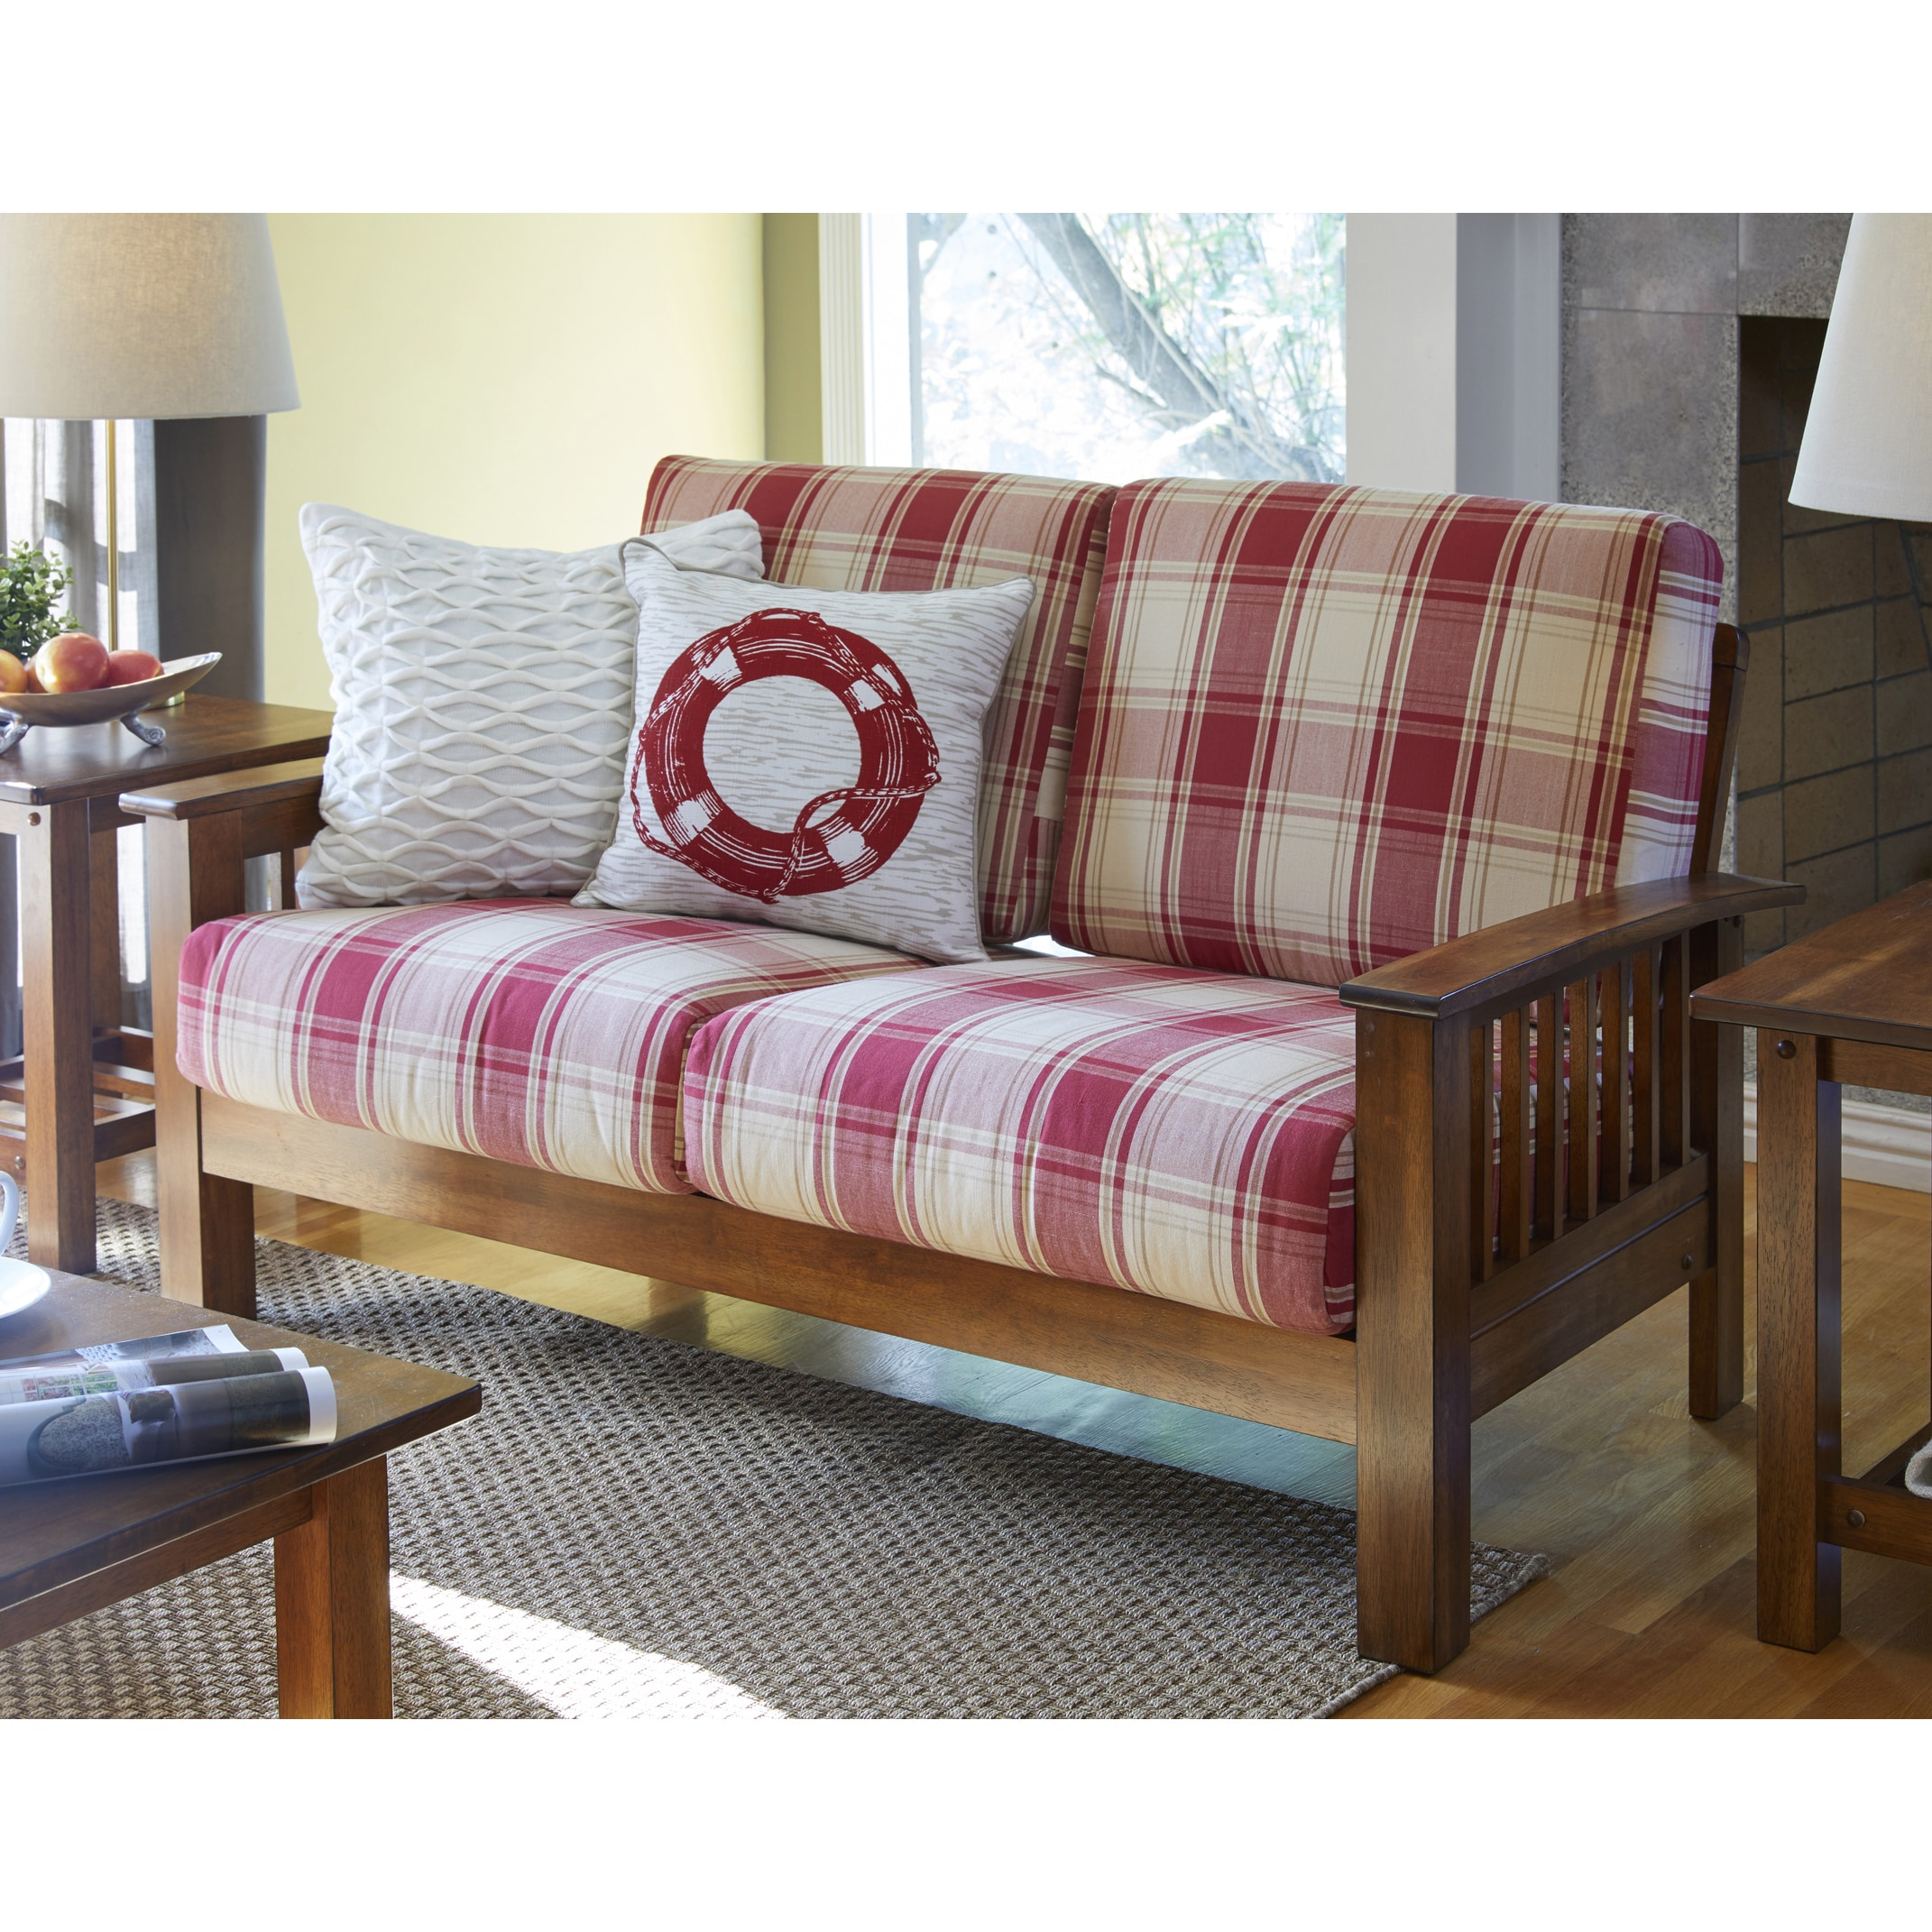 wood frame set pin features and tufted wingback room includes this loveseat sofa living high back which inspirational